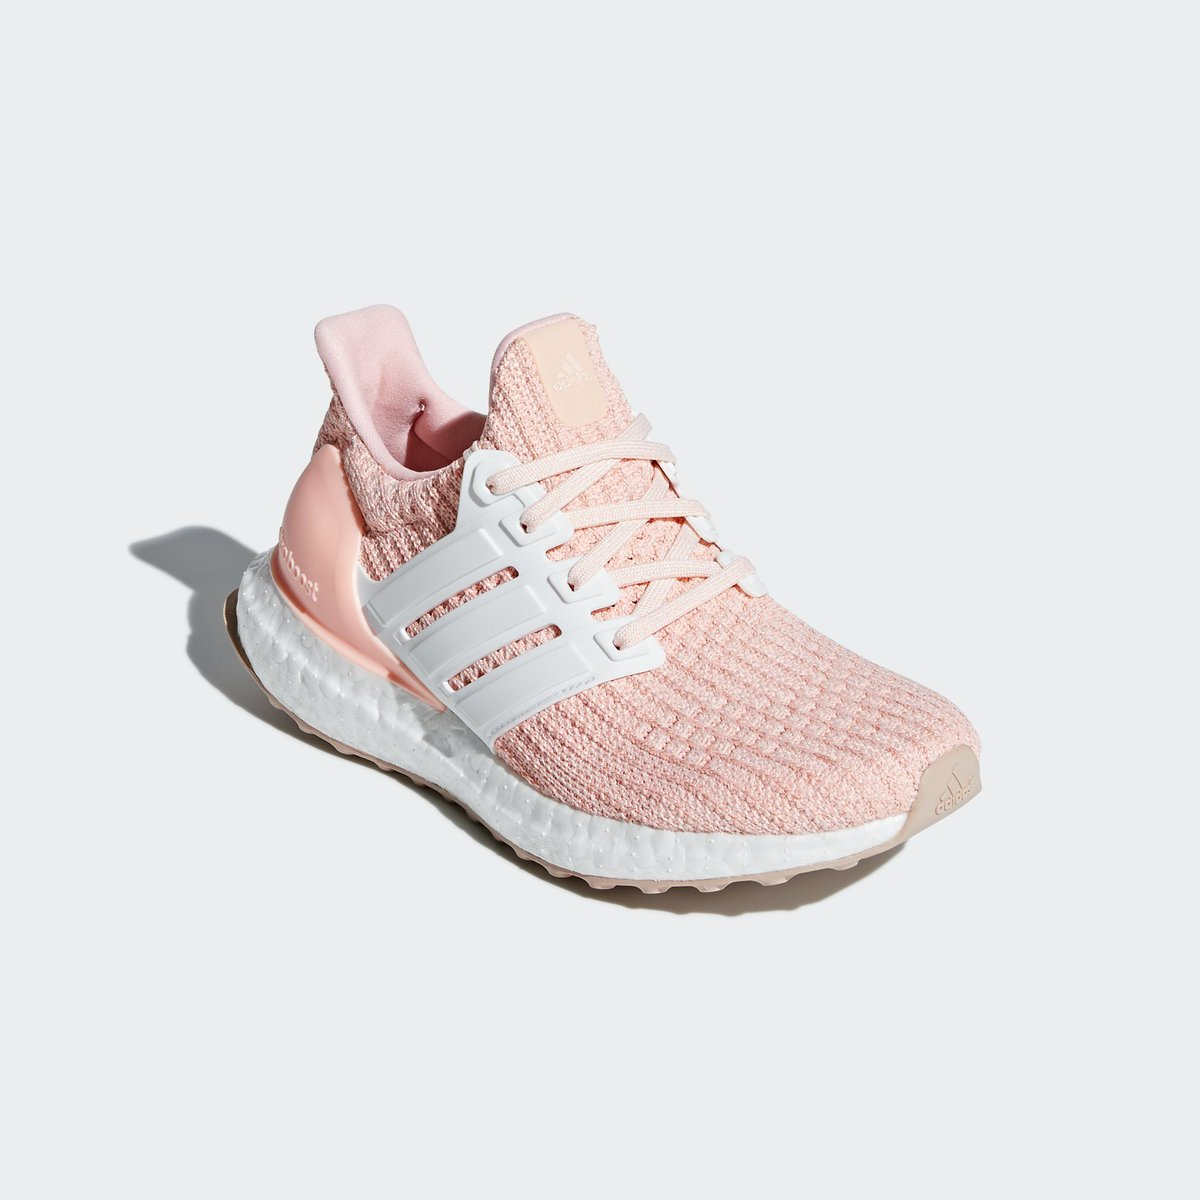 945a5eb14 adidas alerts on Twitter